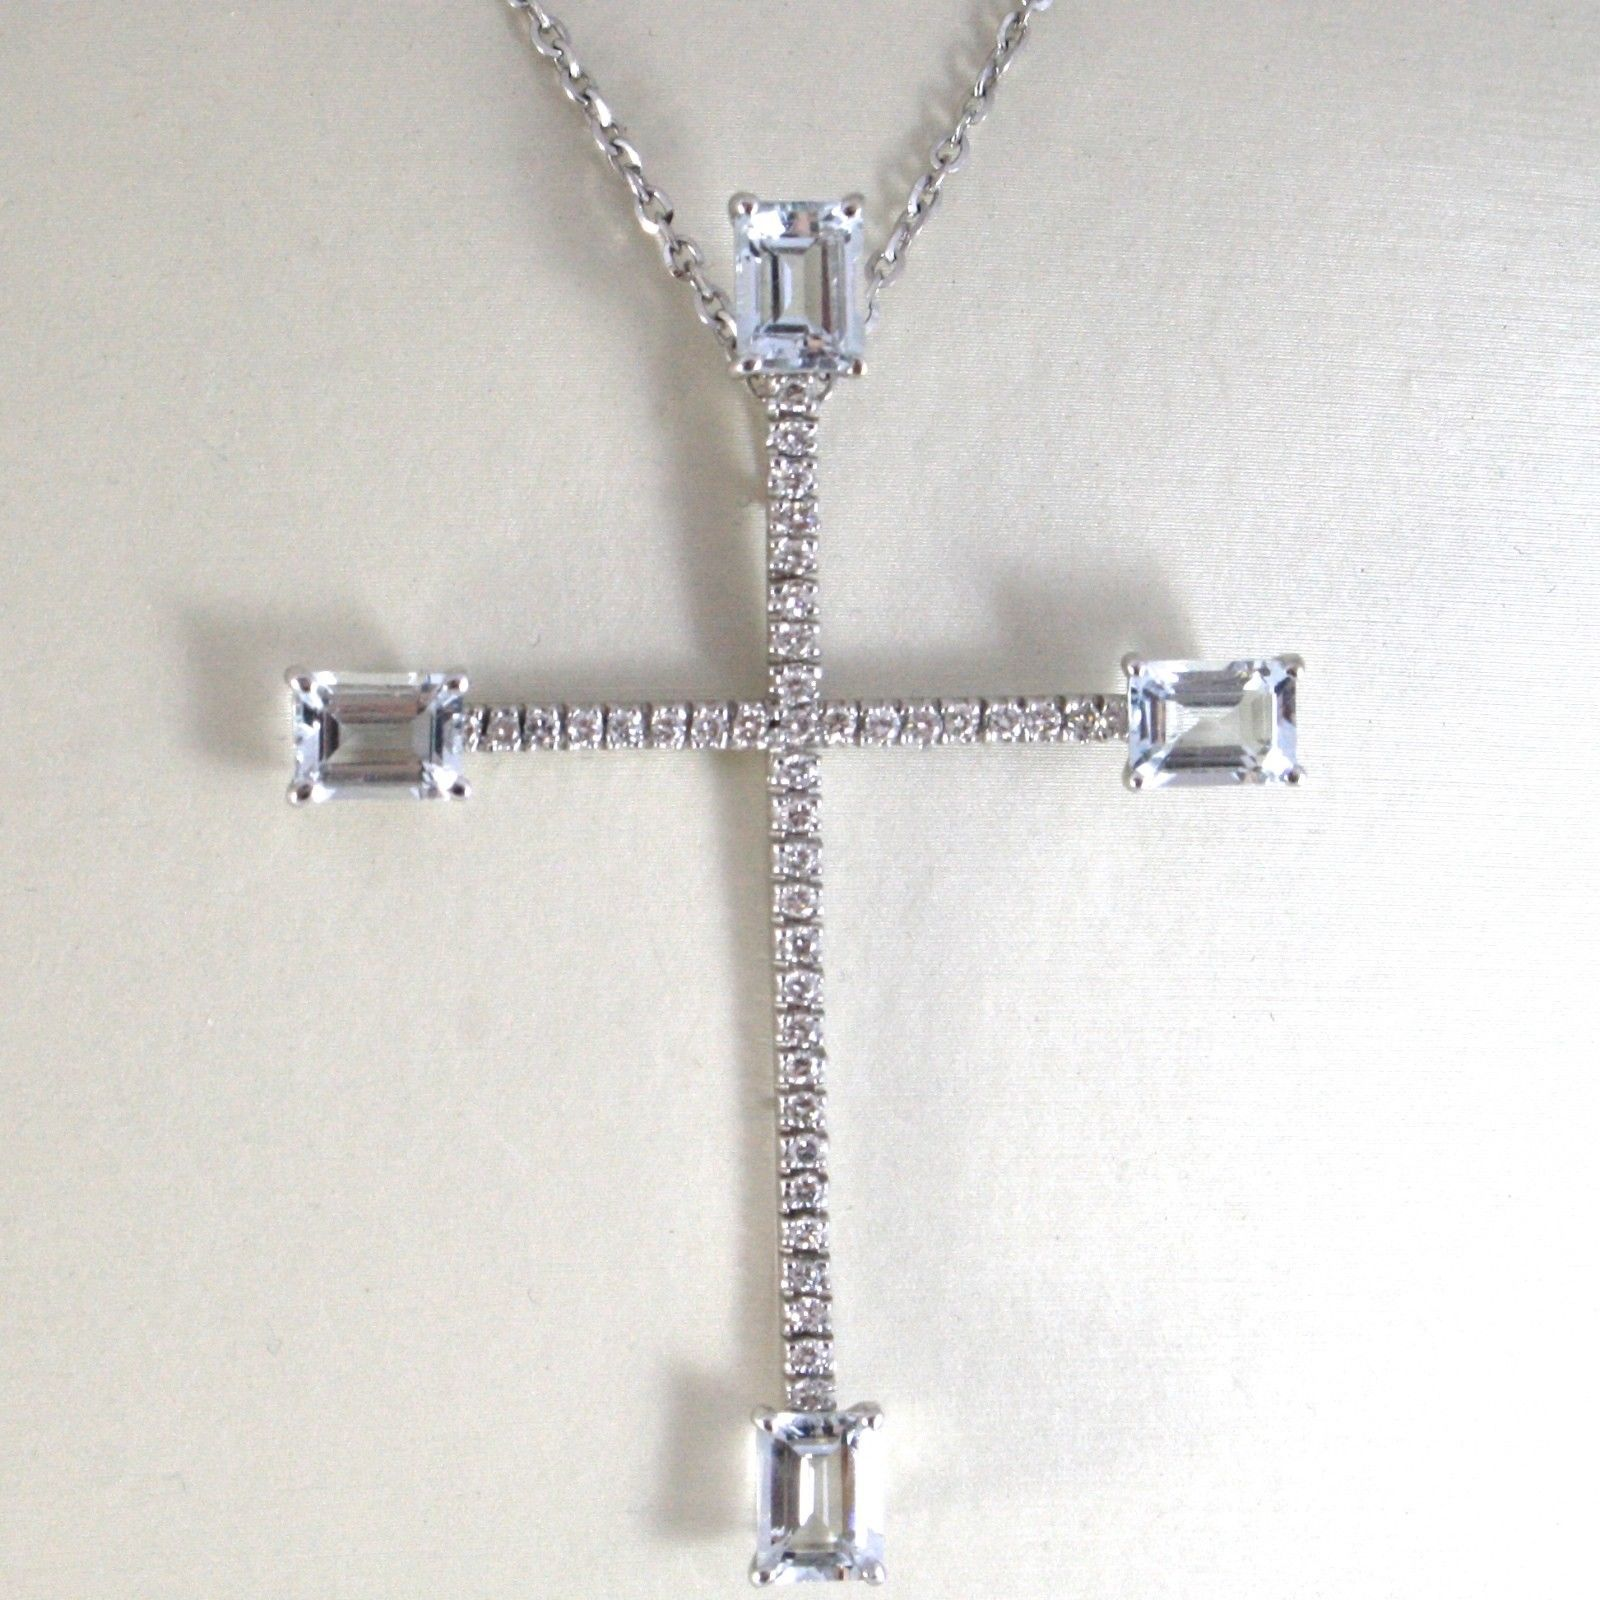 NECKLACE WHITE GOLD 750 18K,PENDANT CROSS AQUAMARINE AND DIAMONDS,CHAIN ROLO'